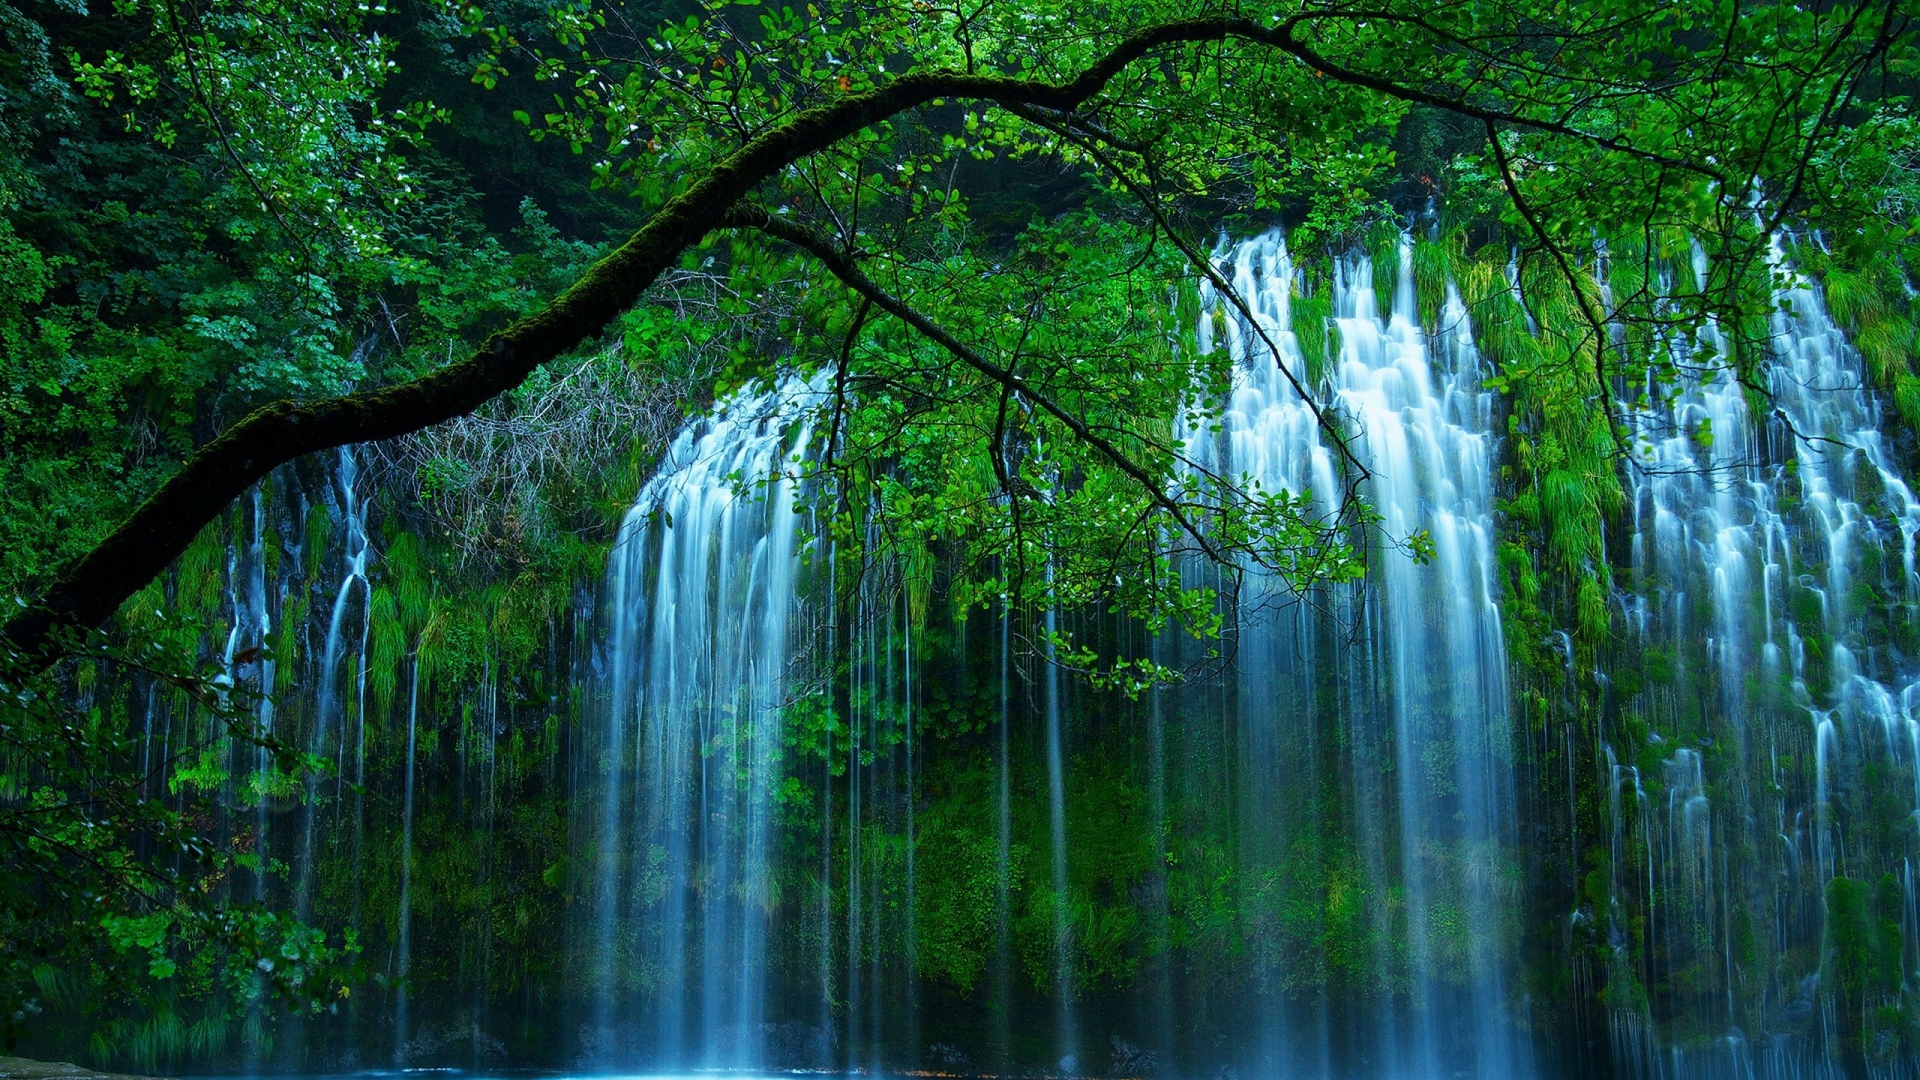 Download Wallpaper 1920x1080 Waterfall Trees For Full Hd 1080p Hd Background